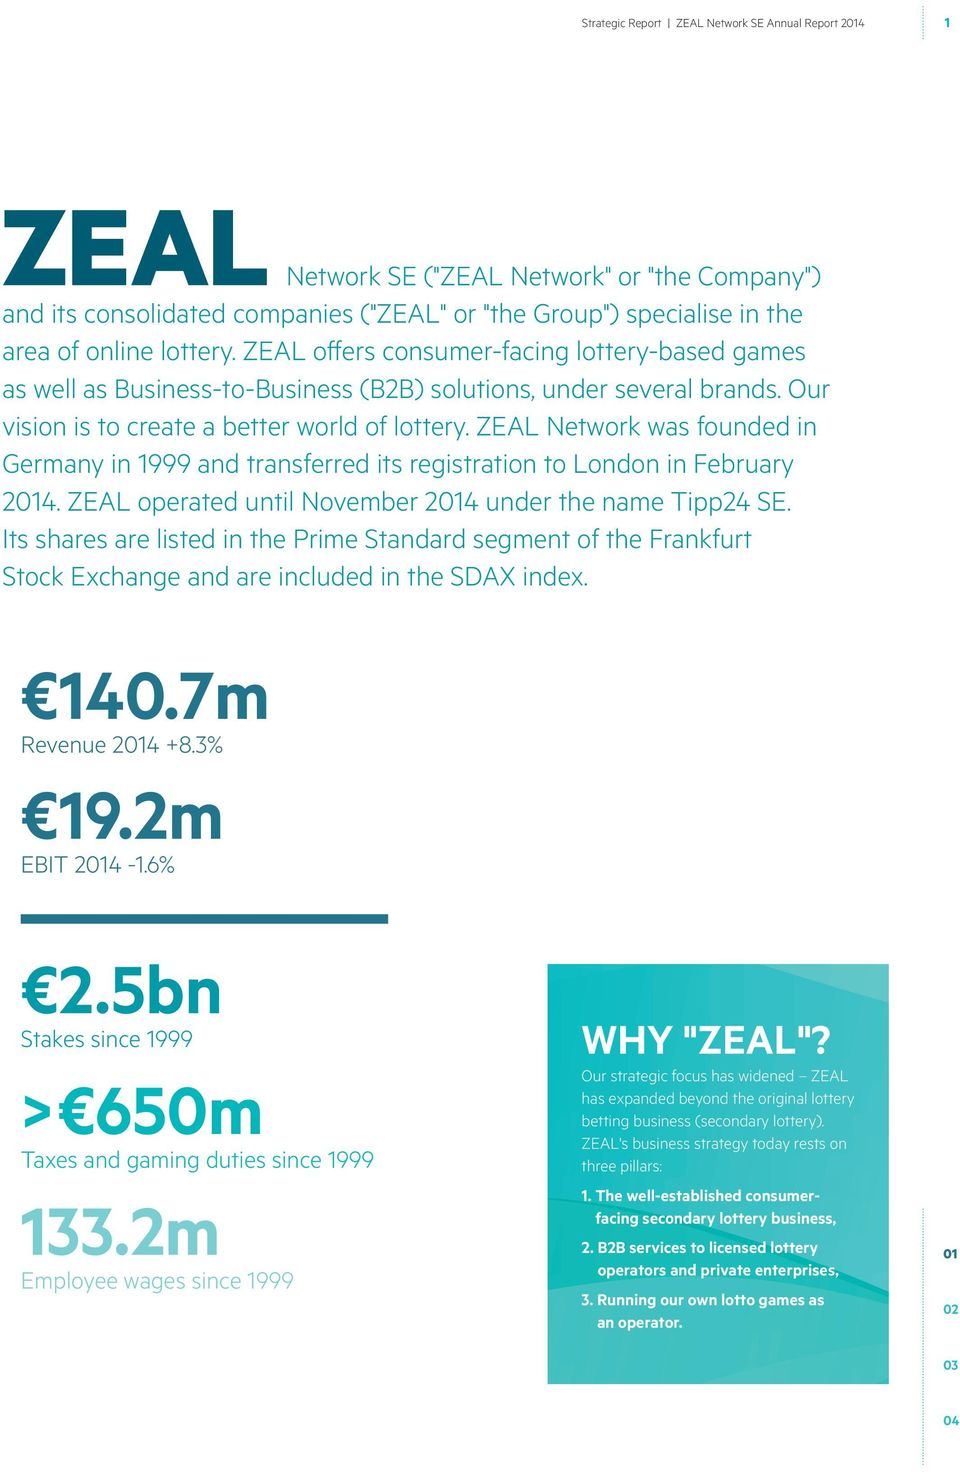 ZEAL Network was founded in Germany in 1999 and transferred its registration to London in February 24. ZEAL operated until November 24 under the name Tipp24 SE.